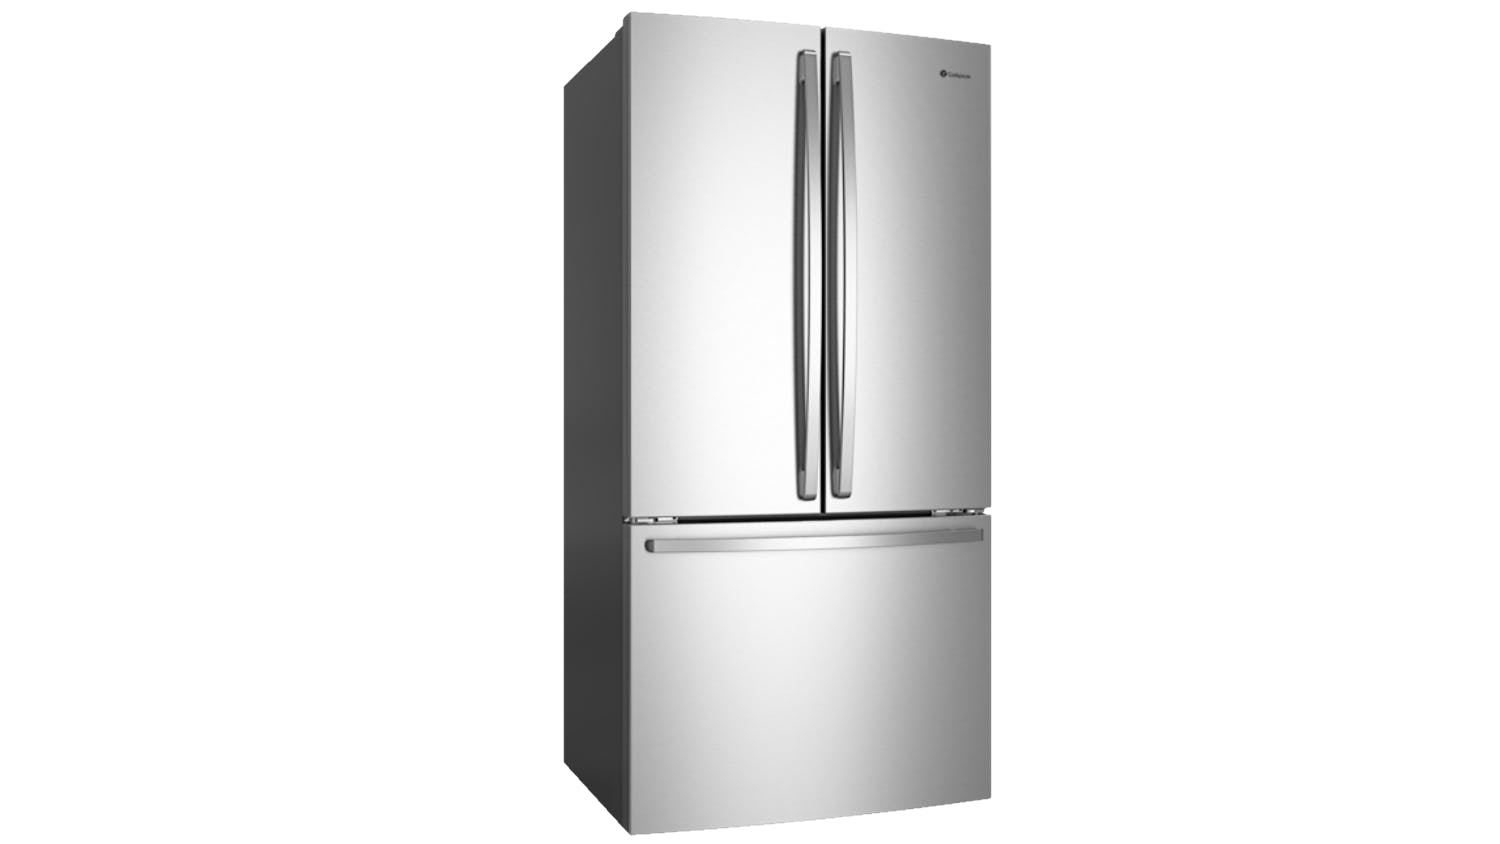 Westinghouse 524l French Door Fridge Stainless Steel Domayne